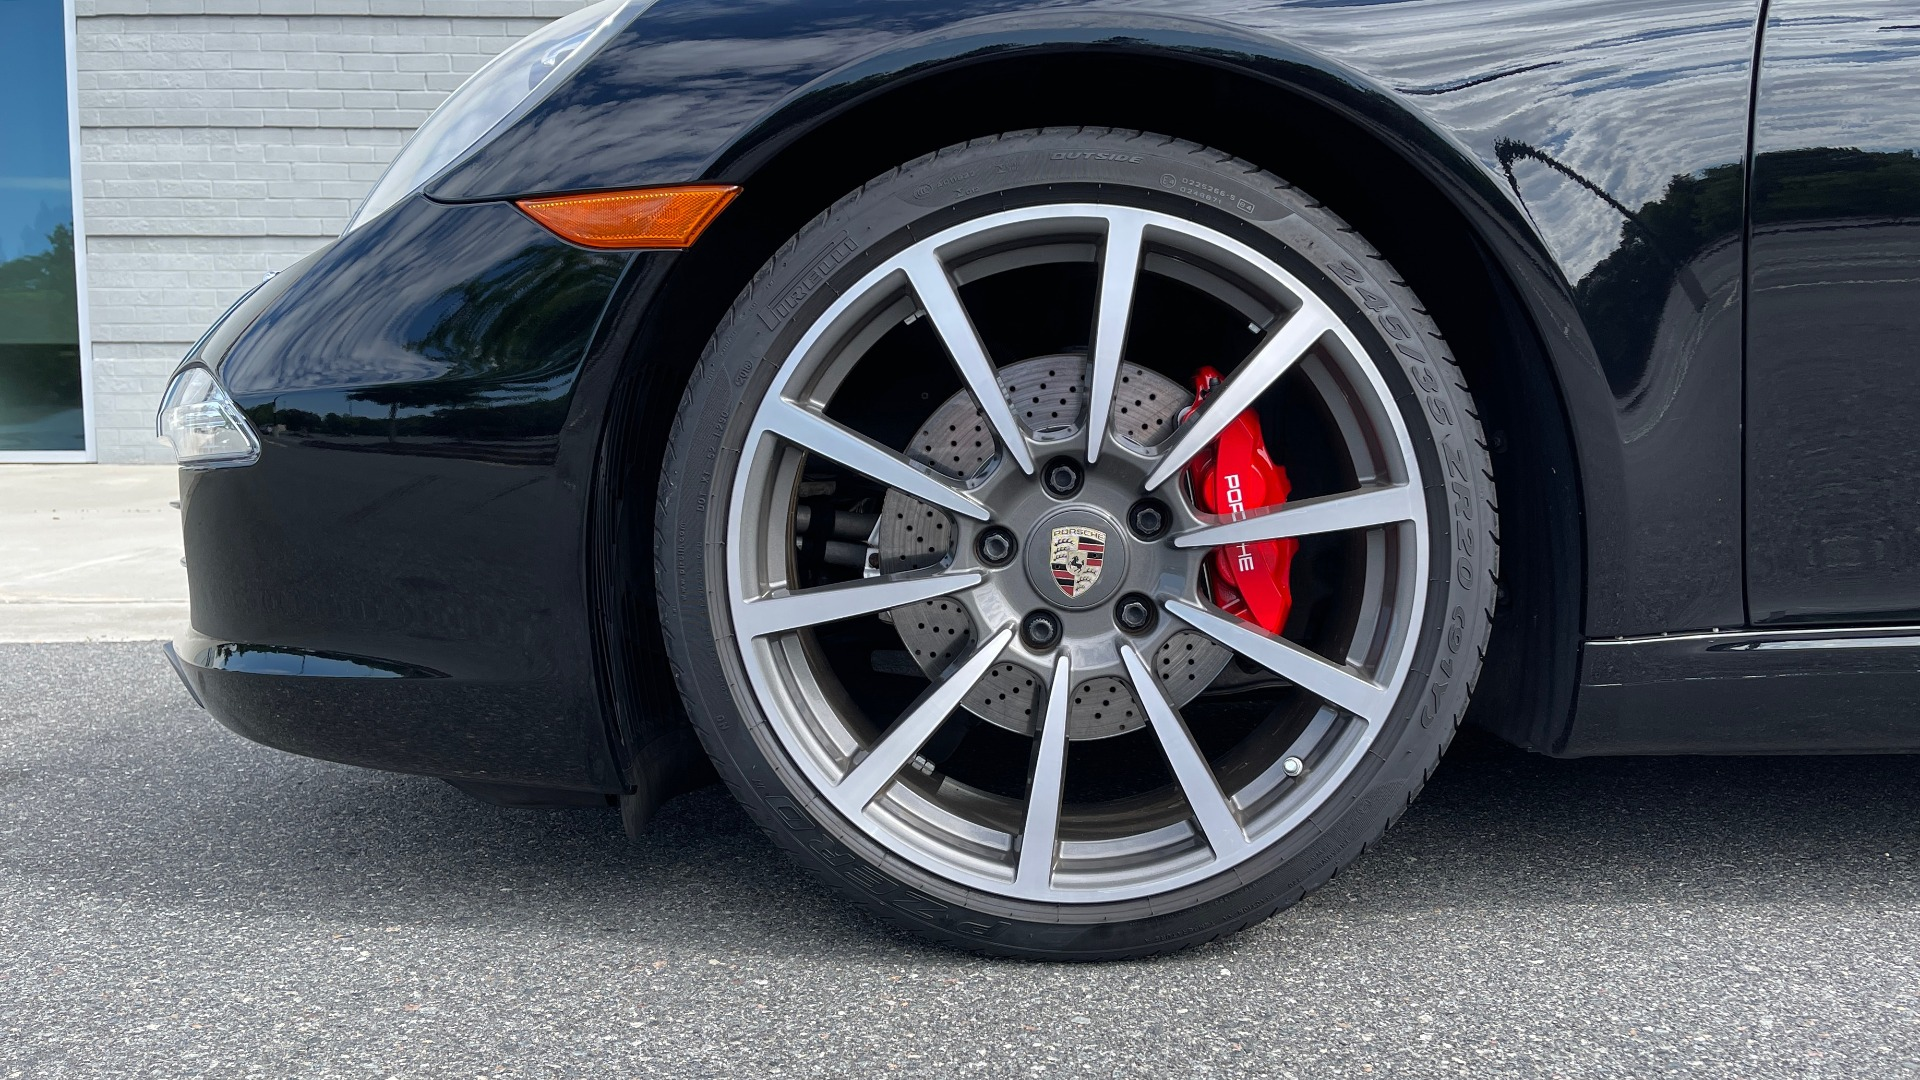 Used 2013 Porsche 911 CARRERA CABRIOLET / PDK / NAV / BOSE / HTD STS / PDLS for sale Sold at Formula Imports in Charlotte NC 28227 85